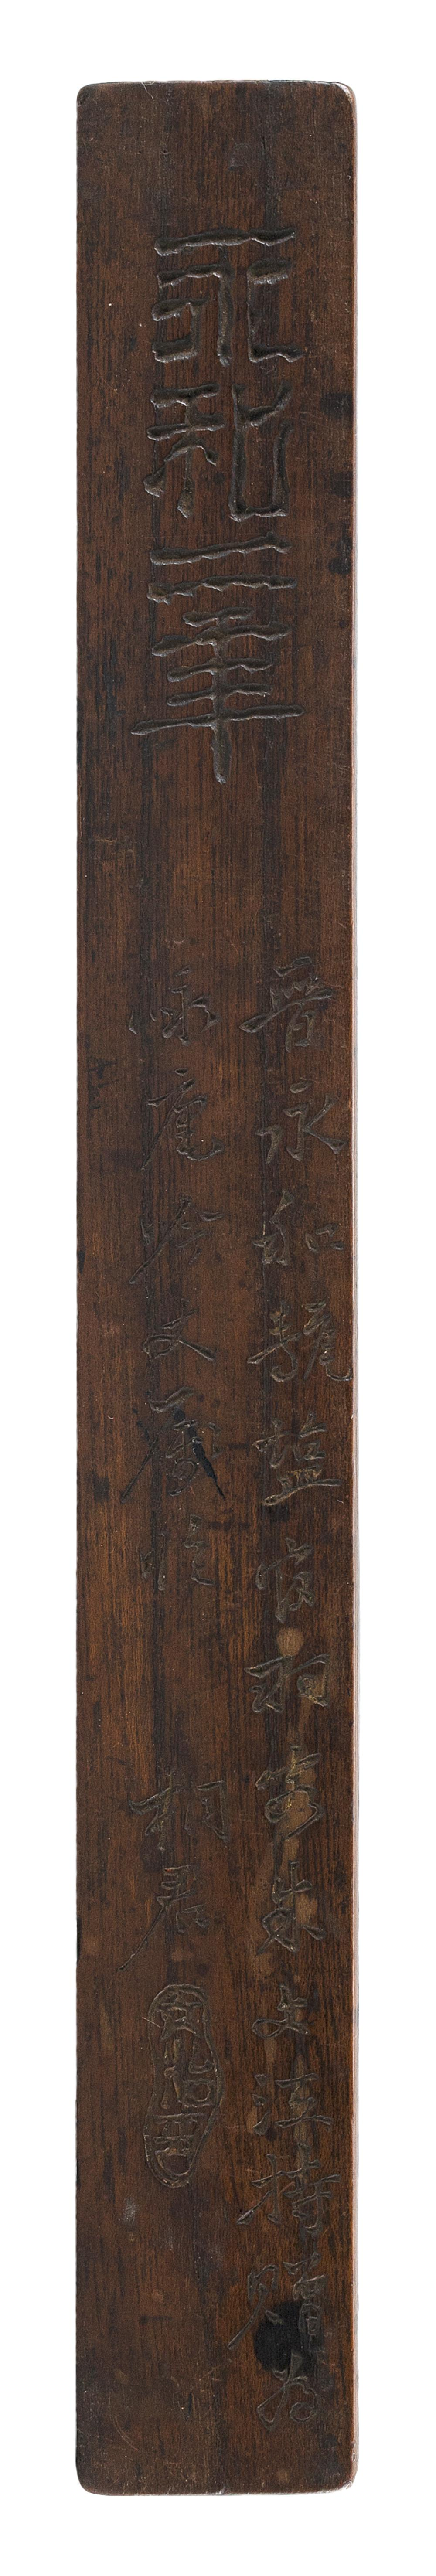 "CHINESE CARVED WOODEN SCROLL WEIGHT Extensively carved with calligraphy on two faces. Signed and seal marked. Length 10"". Provenance..."